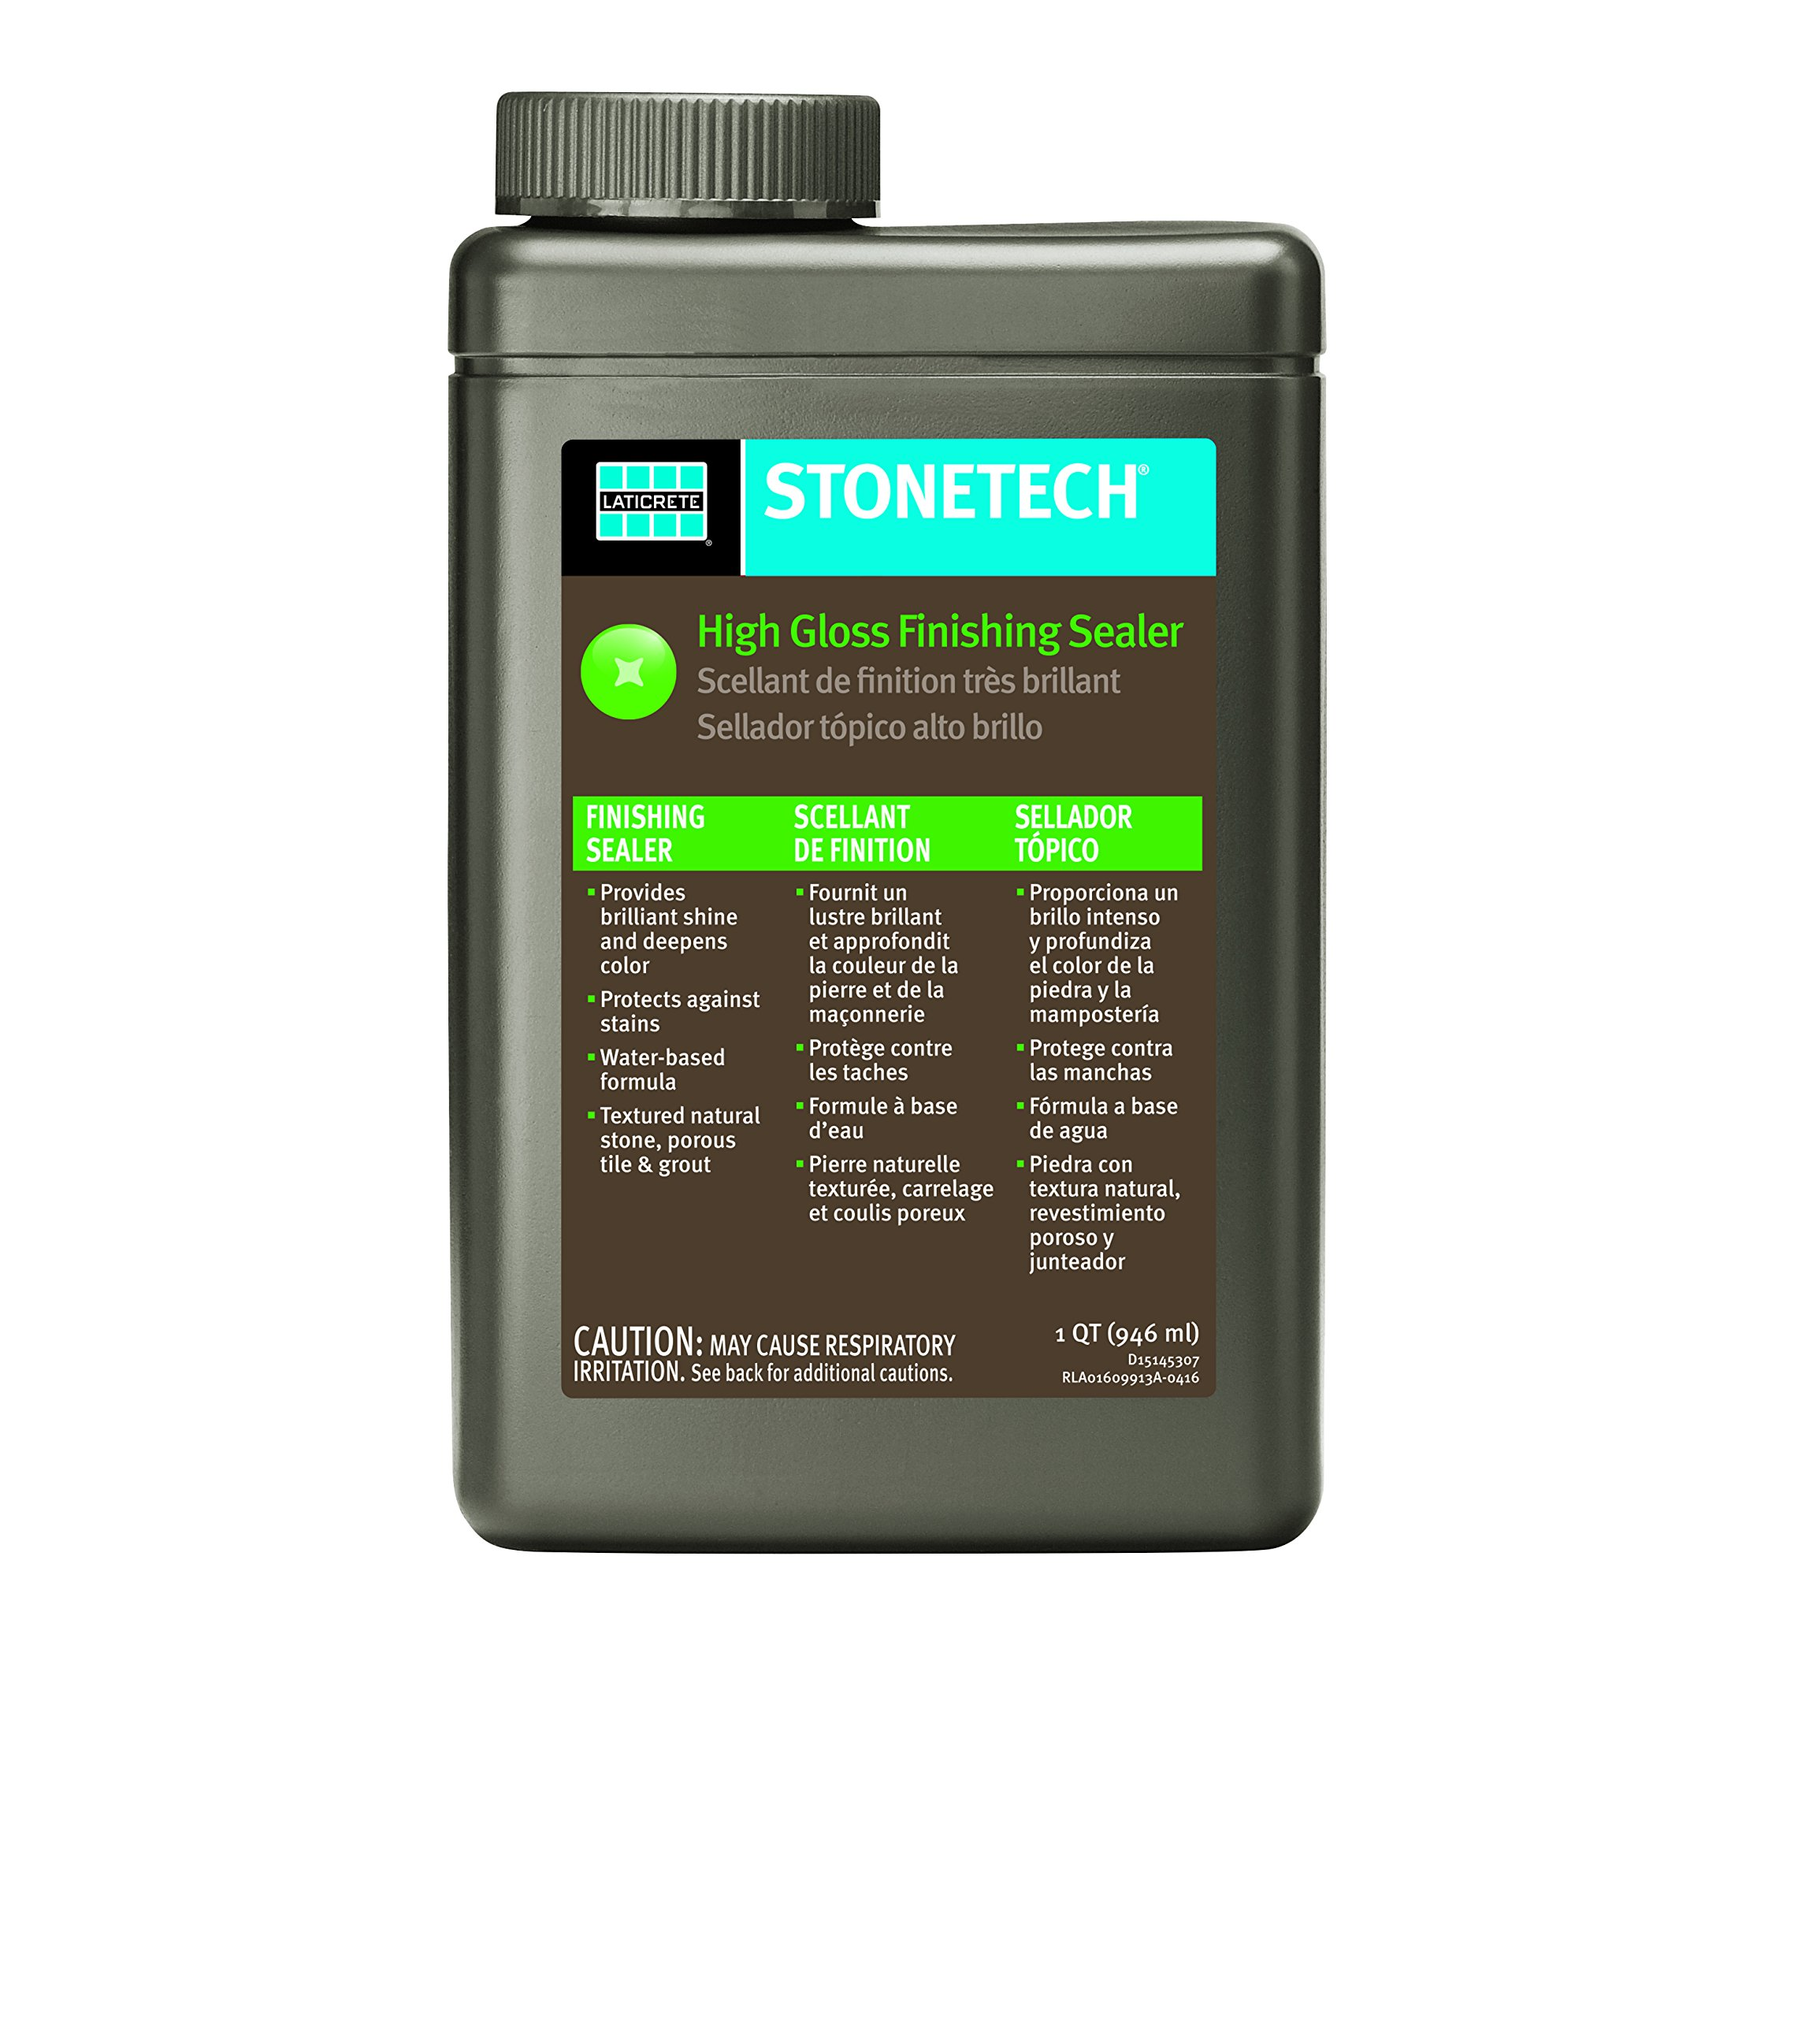 StoneTech High Gloss Finishing Sealer for Natural Stone, Tile, Grout, 1-Quart (.946L)